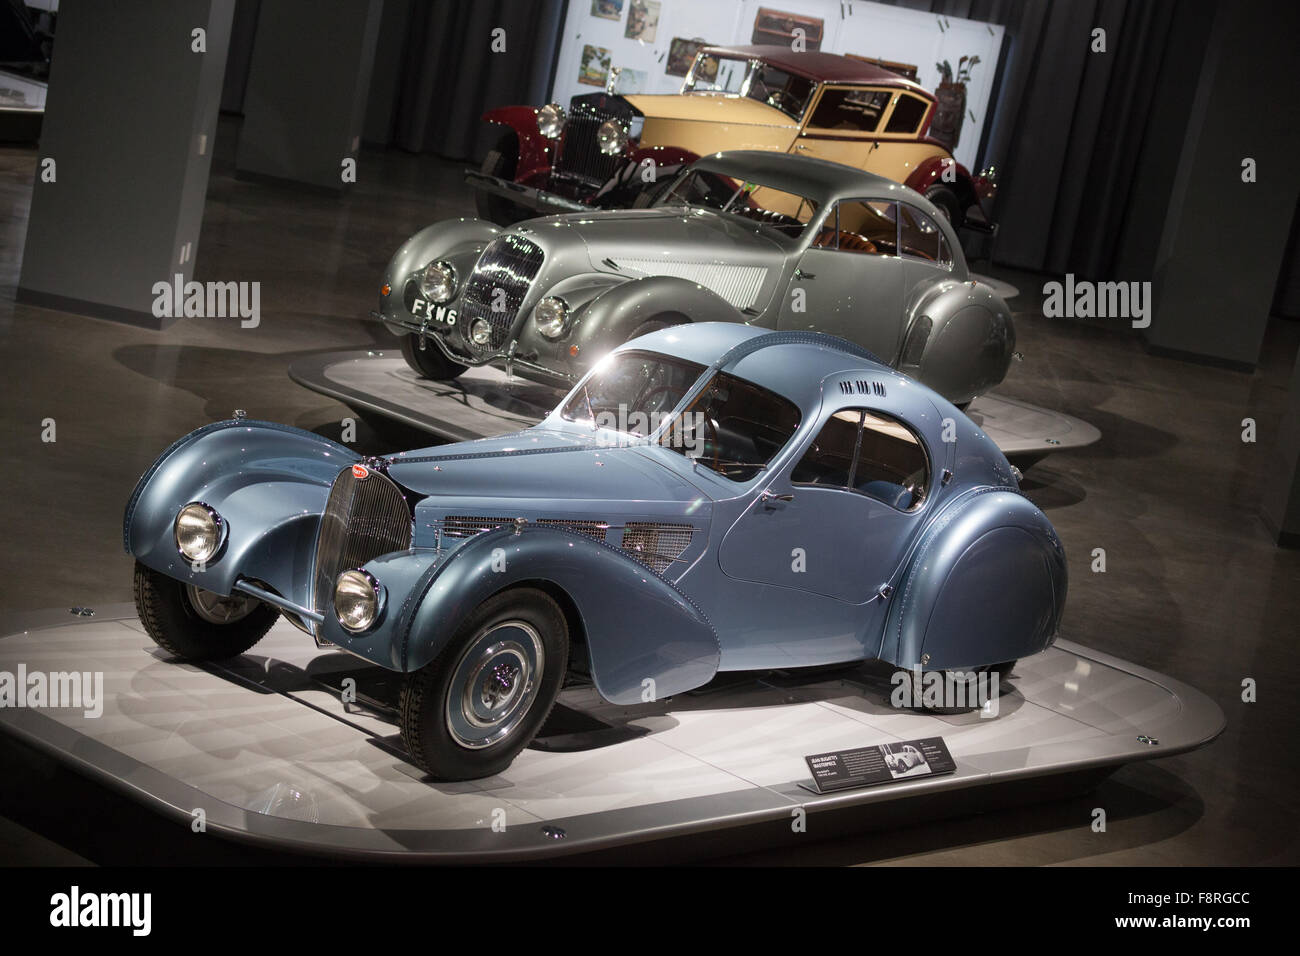 Cars in the Artistry Exhibit at the Petersen Automotive Museum ...